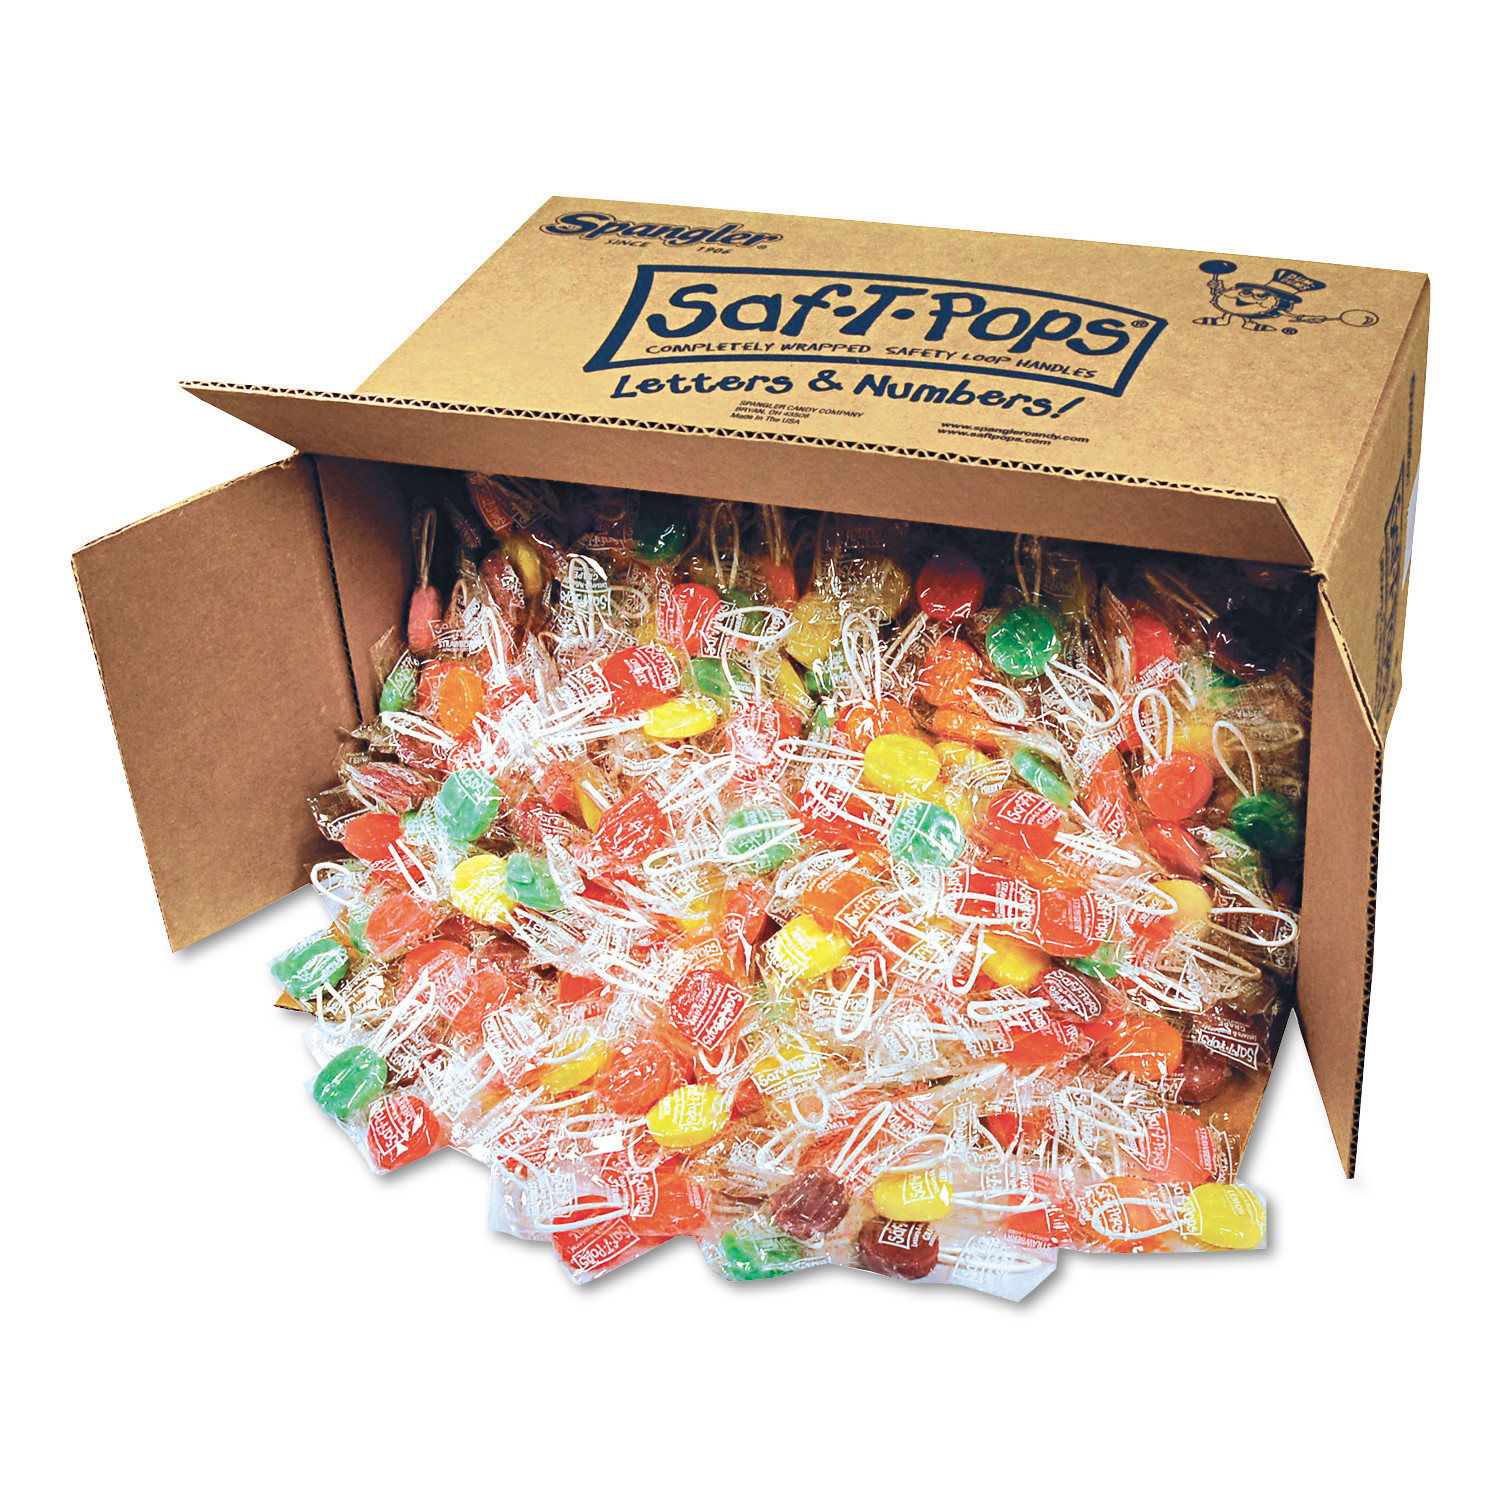 Spangler Saf-T-Pops Individually Wrapped Assorted Flavor Lollipops, 25 lbs